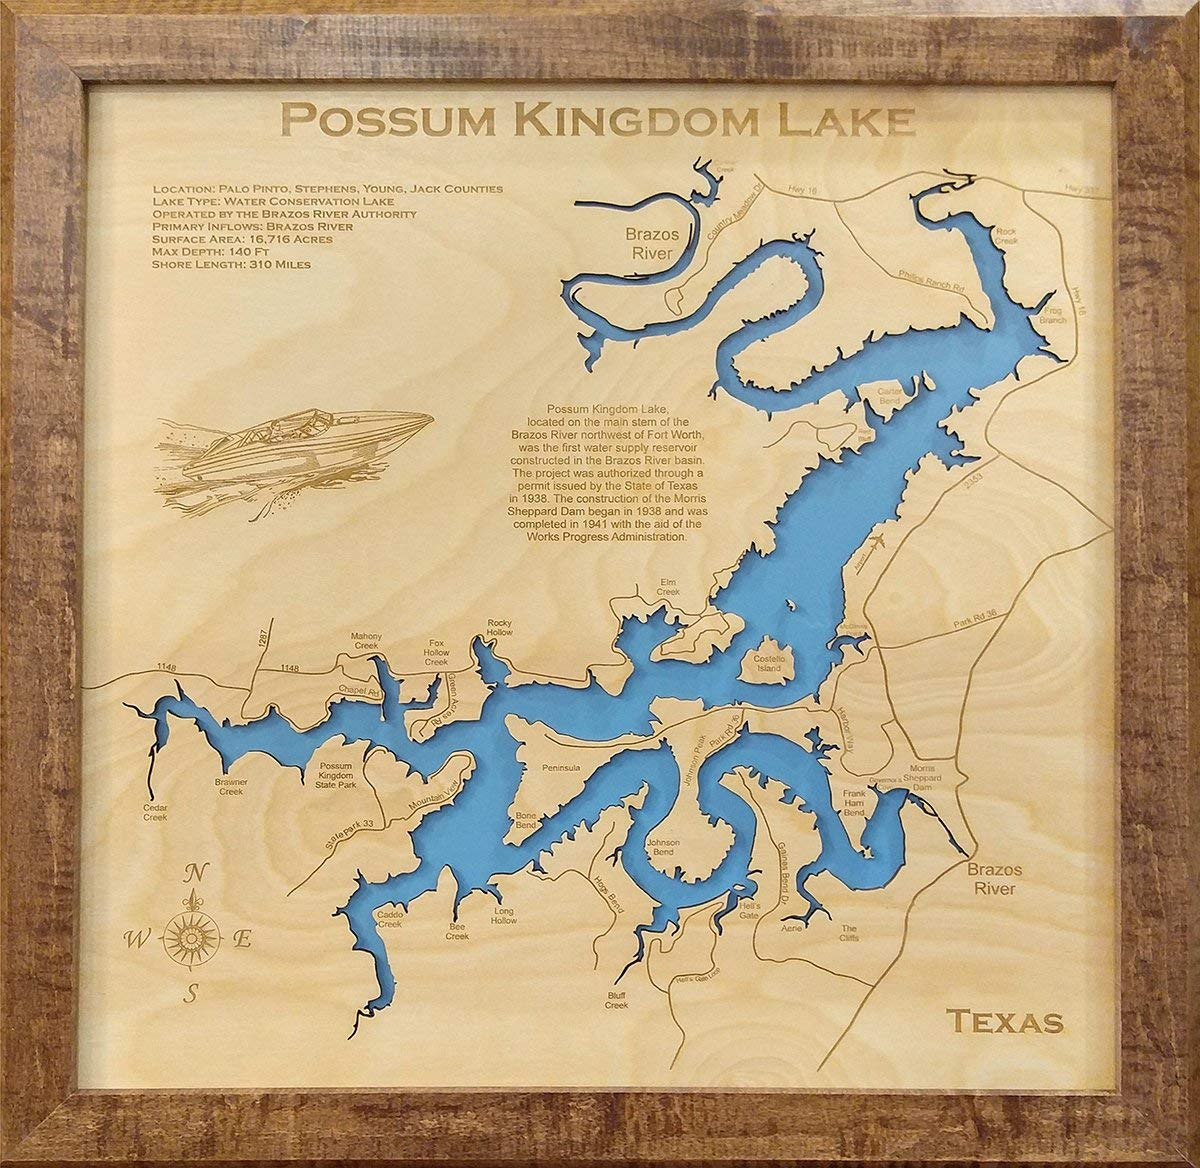 map of possum kingdom lake Amazon Com Possum Kingdom Lake Texas Framed Wood Map Wall map of possum kingdom lake